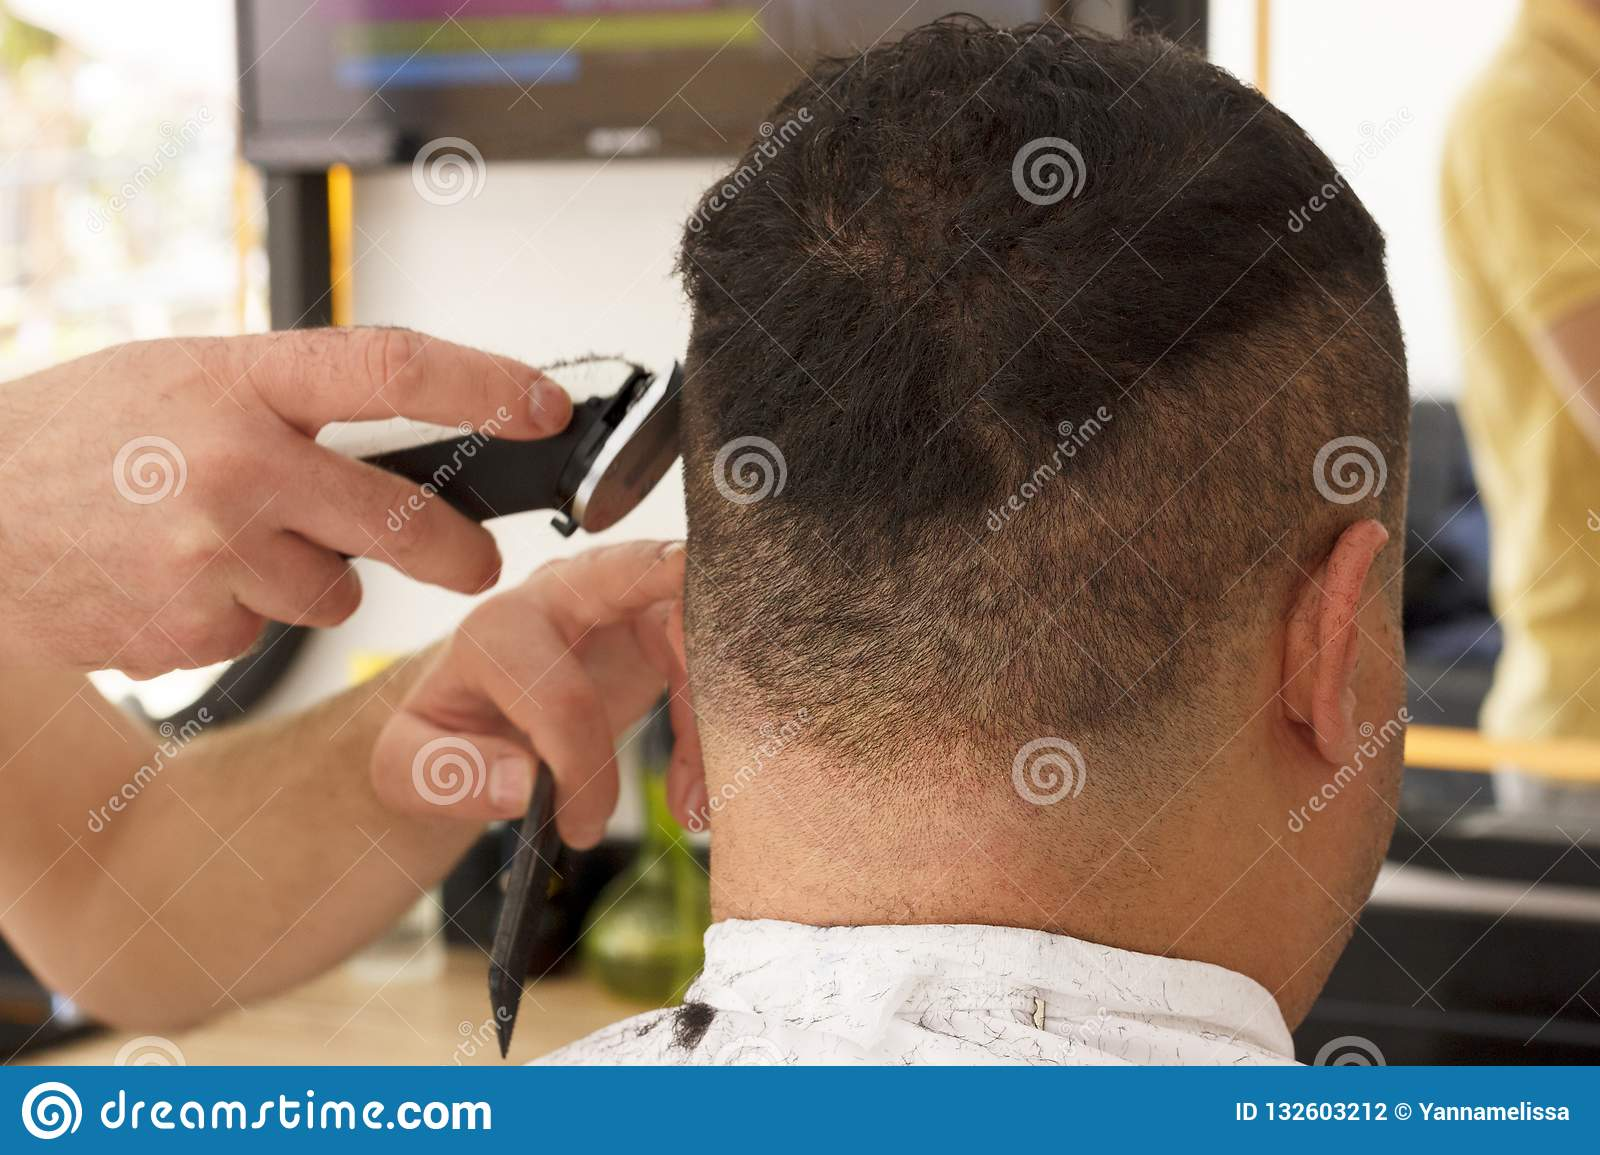 Back view of man getting short hair trimming at barber shop with clipper machine